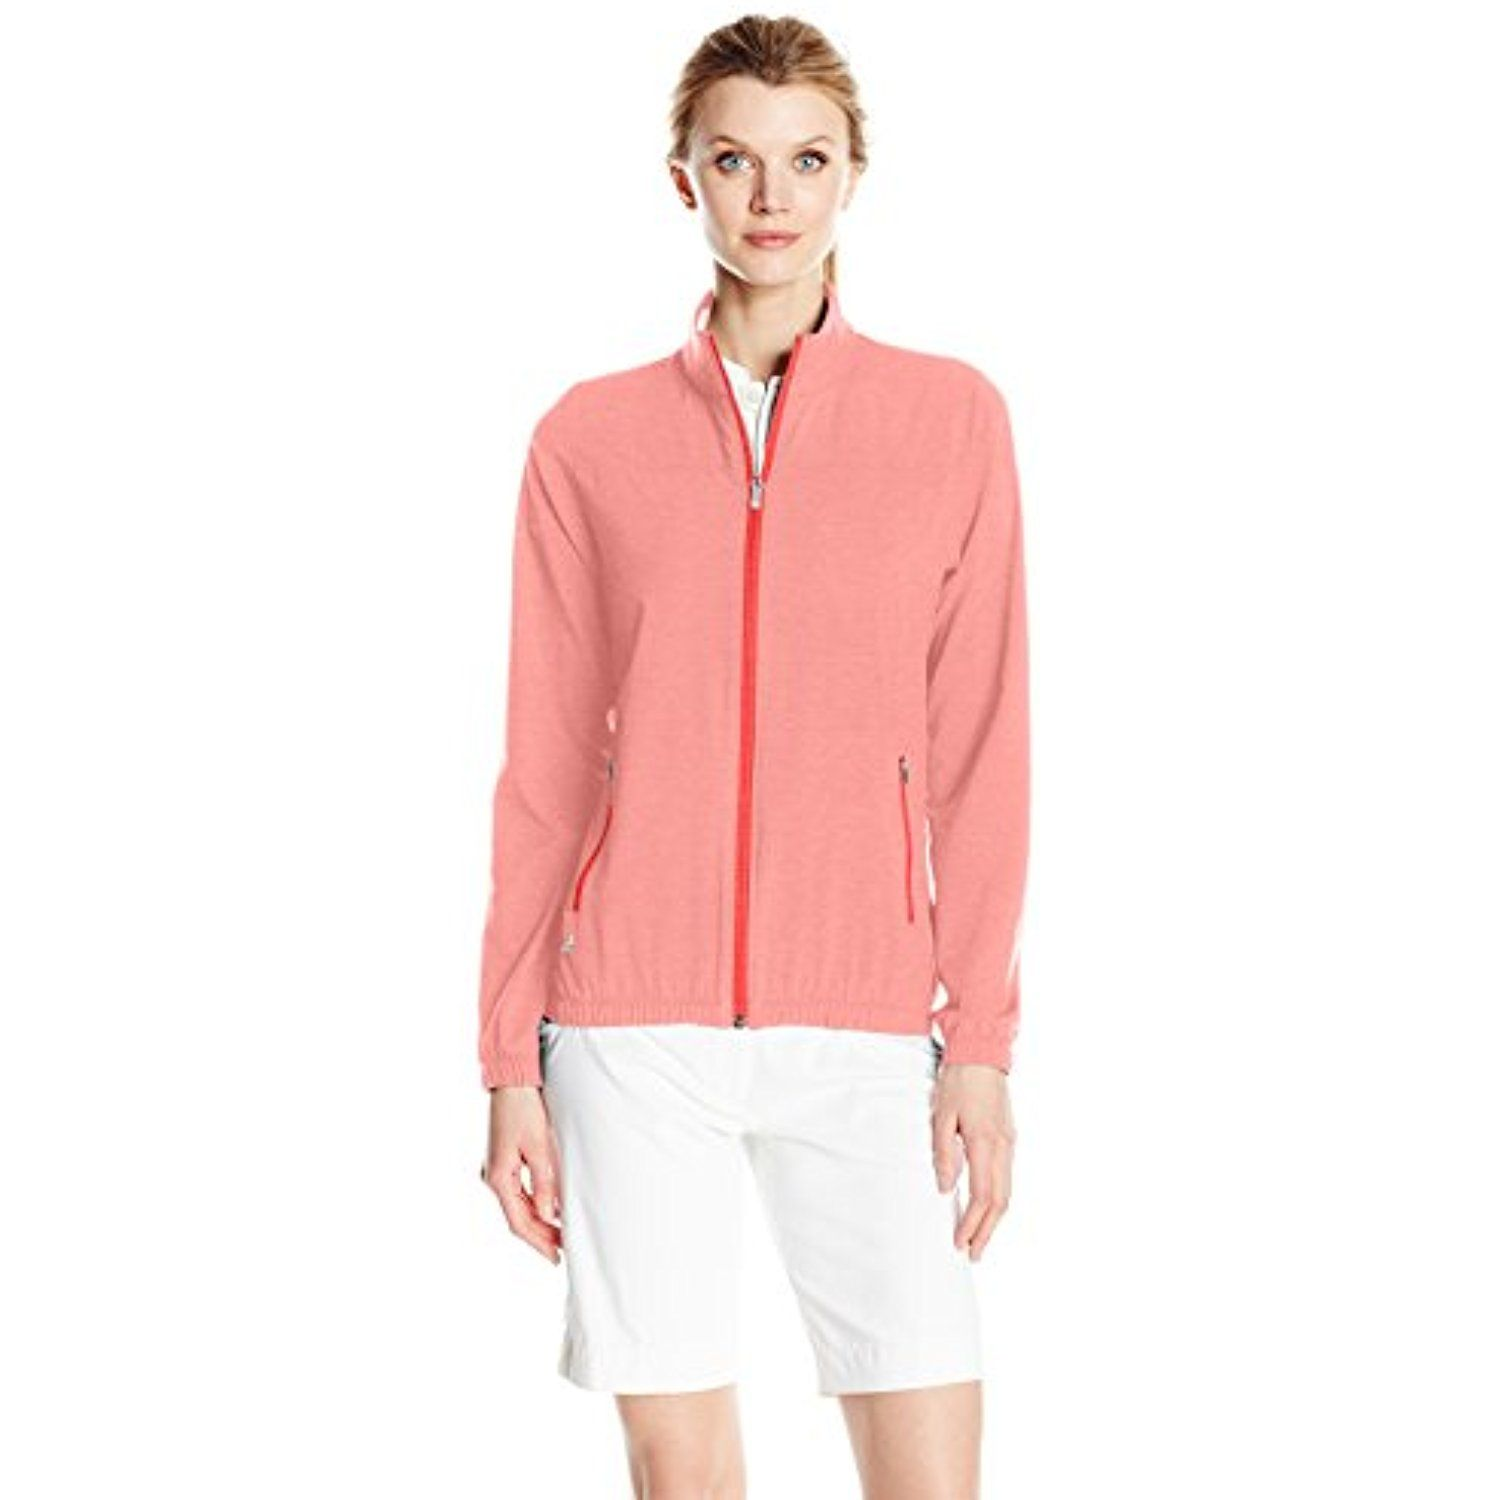 37c05b8094b adidas Golf Women's Essentials Full Zip Jacket -- Details can be found by  clicking on